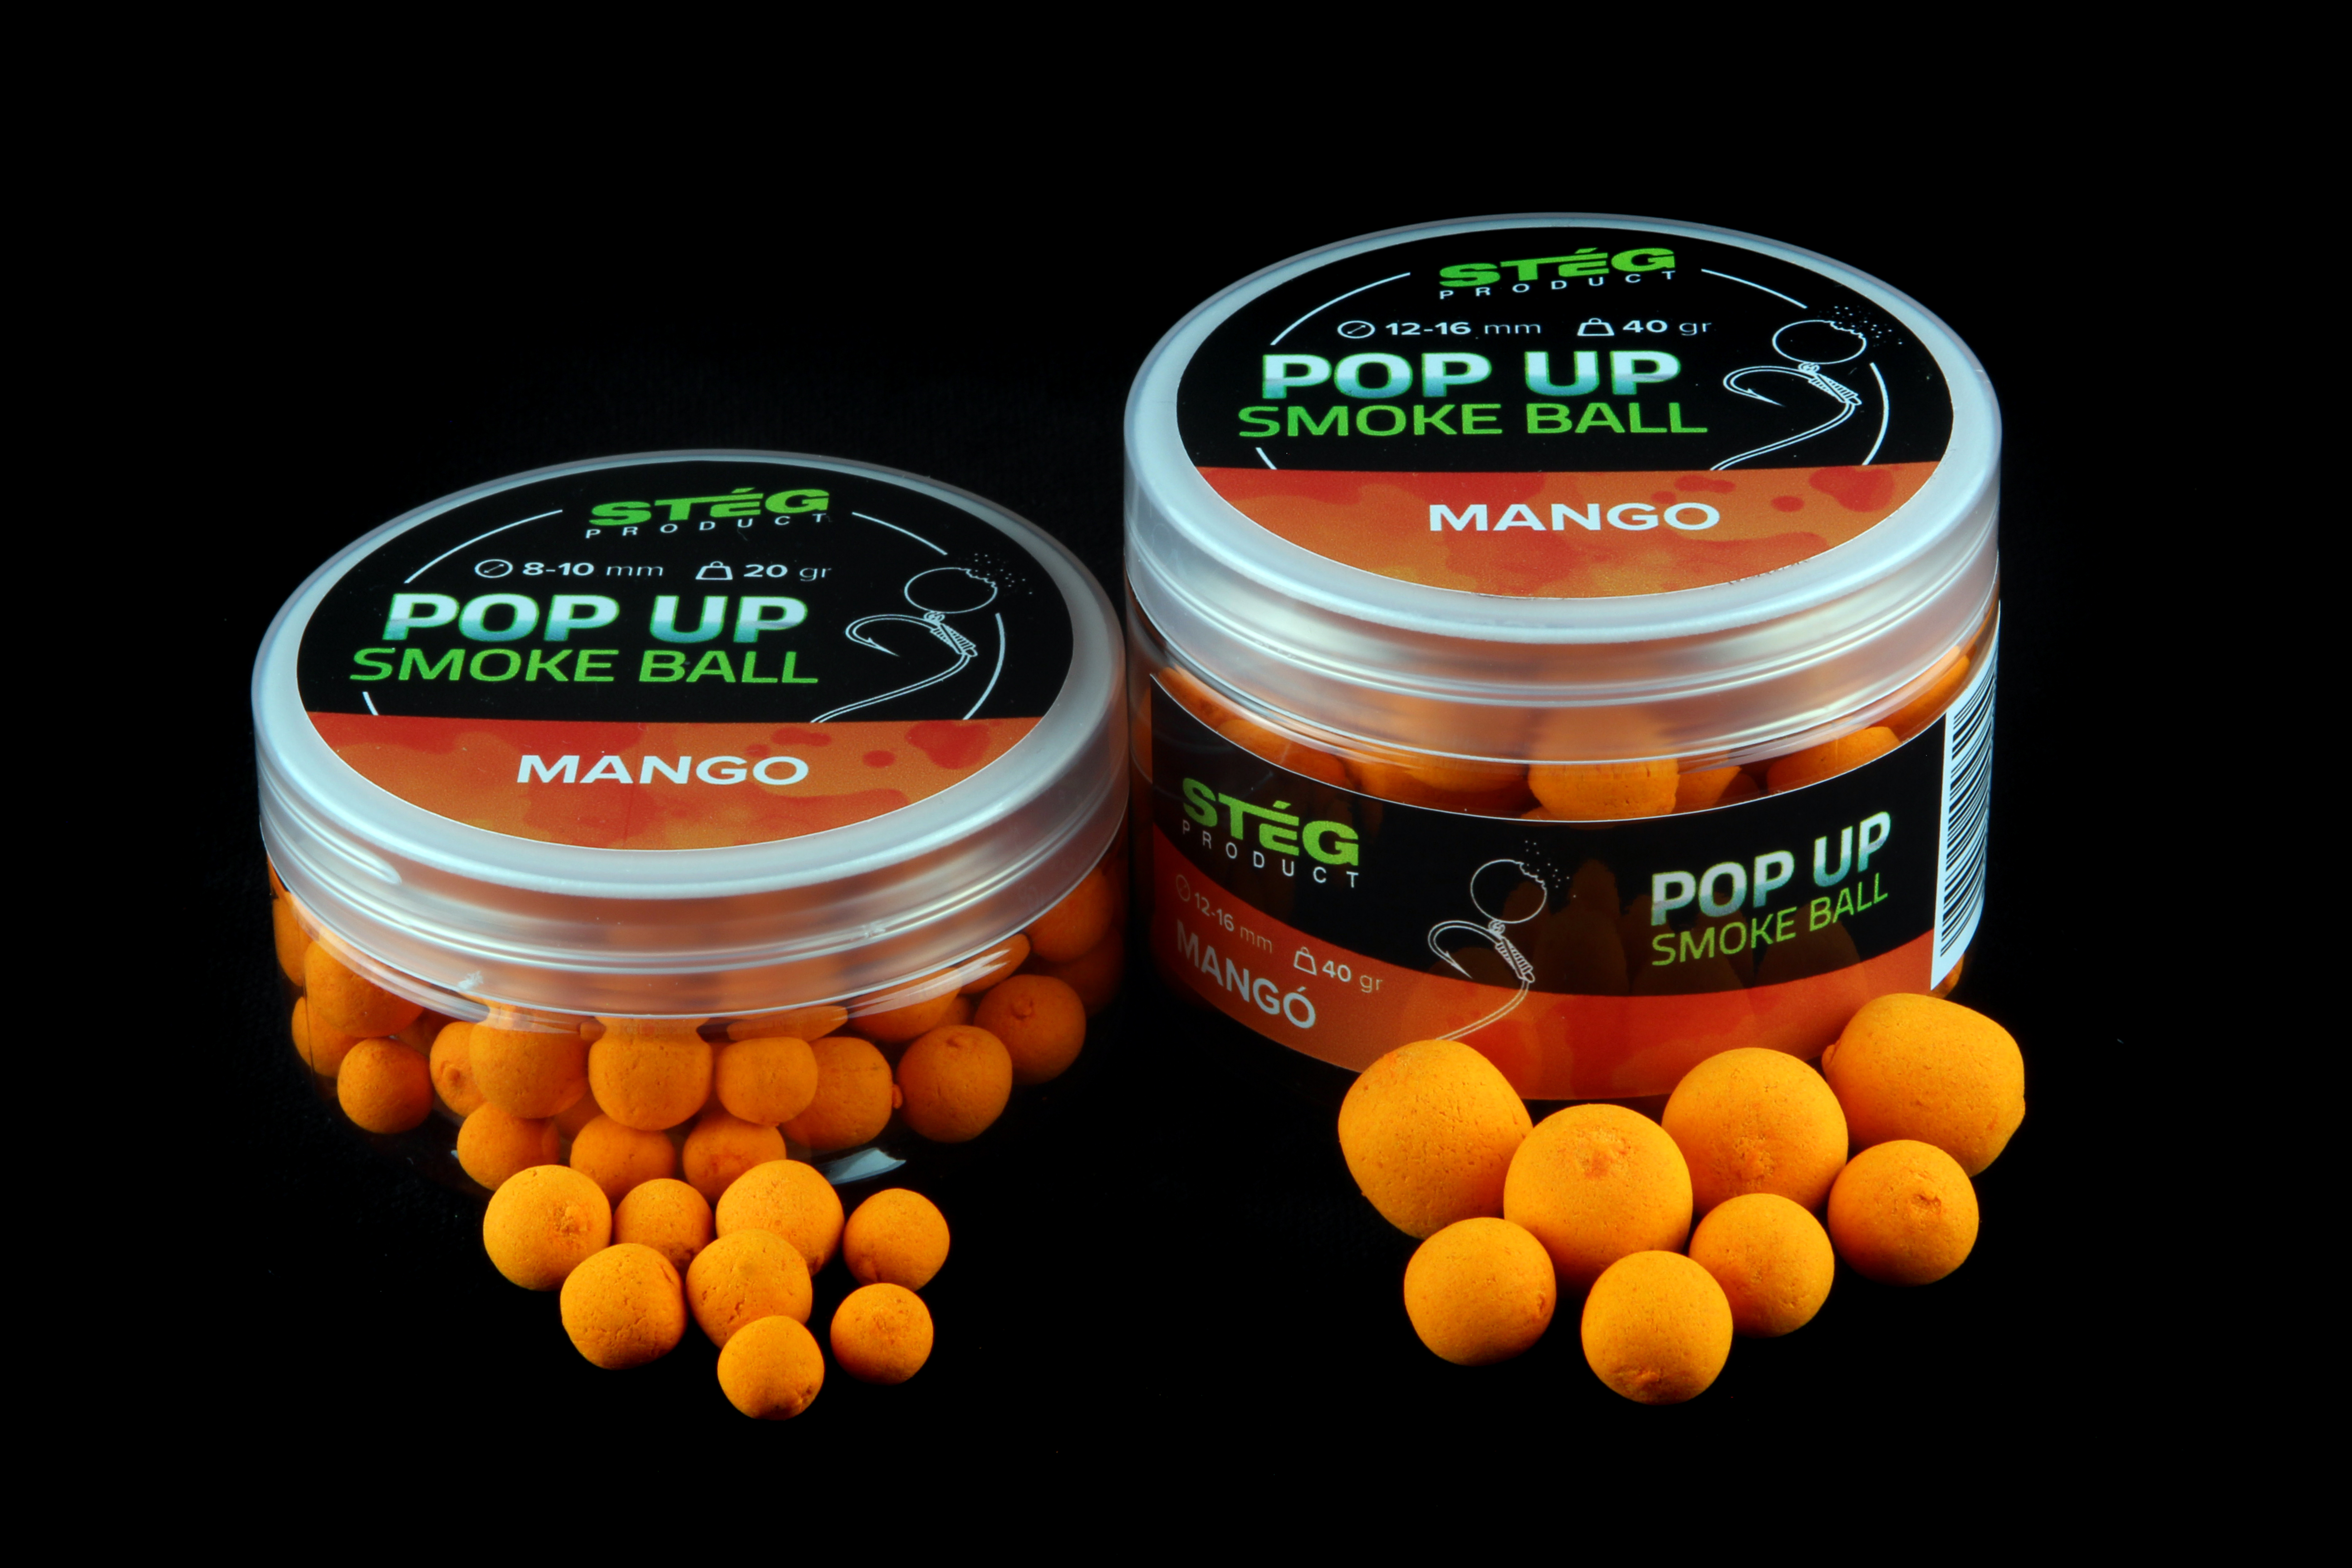 Stég Product Pop Up Smoke Ball 12-16 mm MANGO 40gr (SP171338)